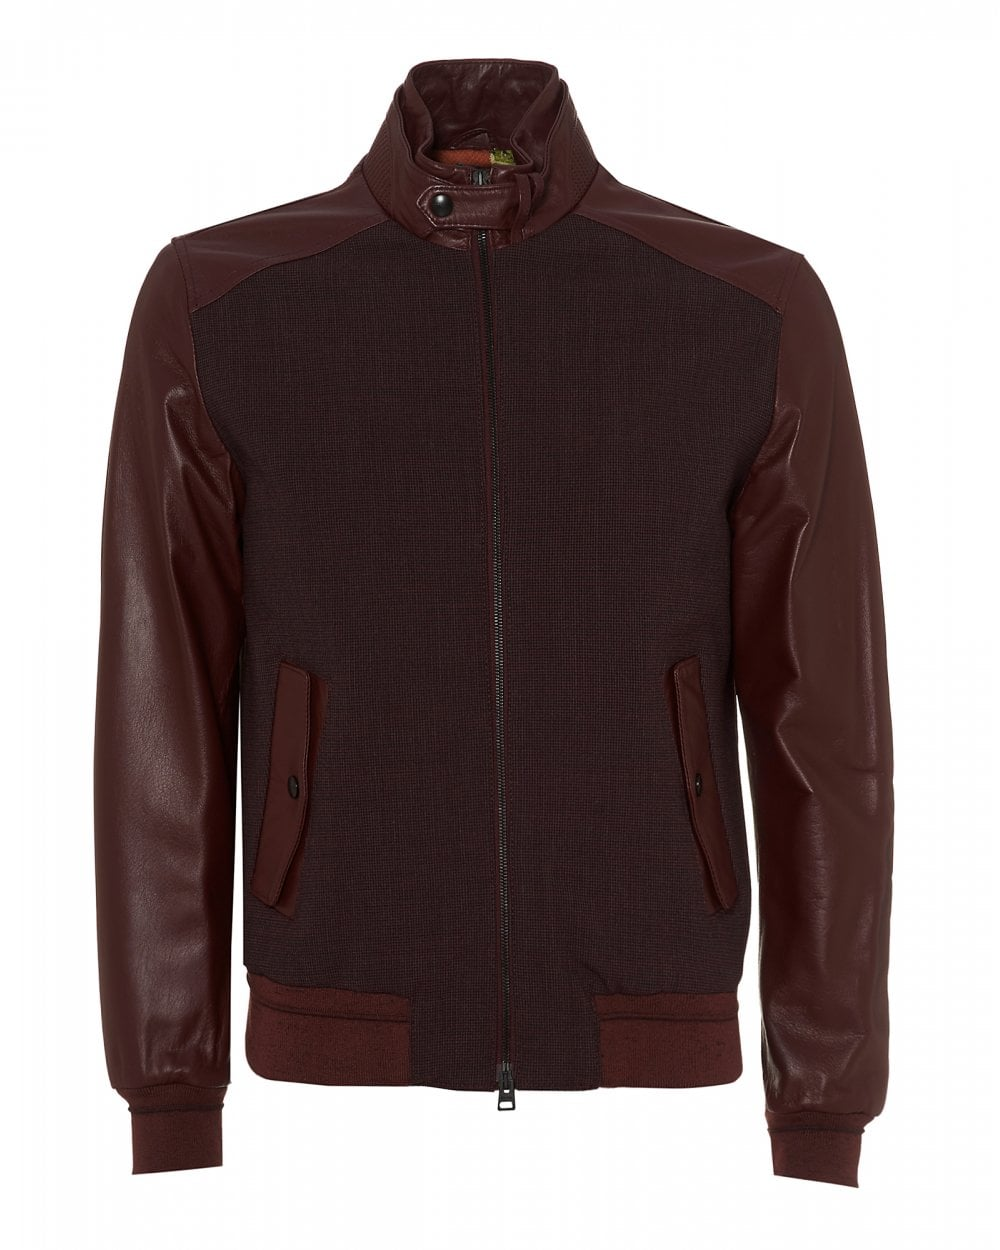 12d582b36 Etro Mens Post Stamp Lined Bomber, Leather Brick Red Jacket